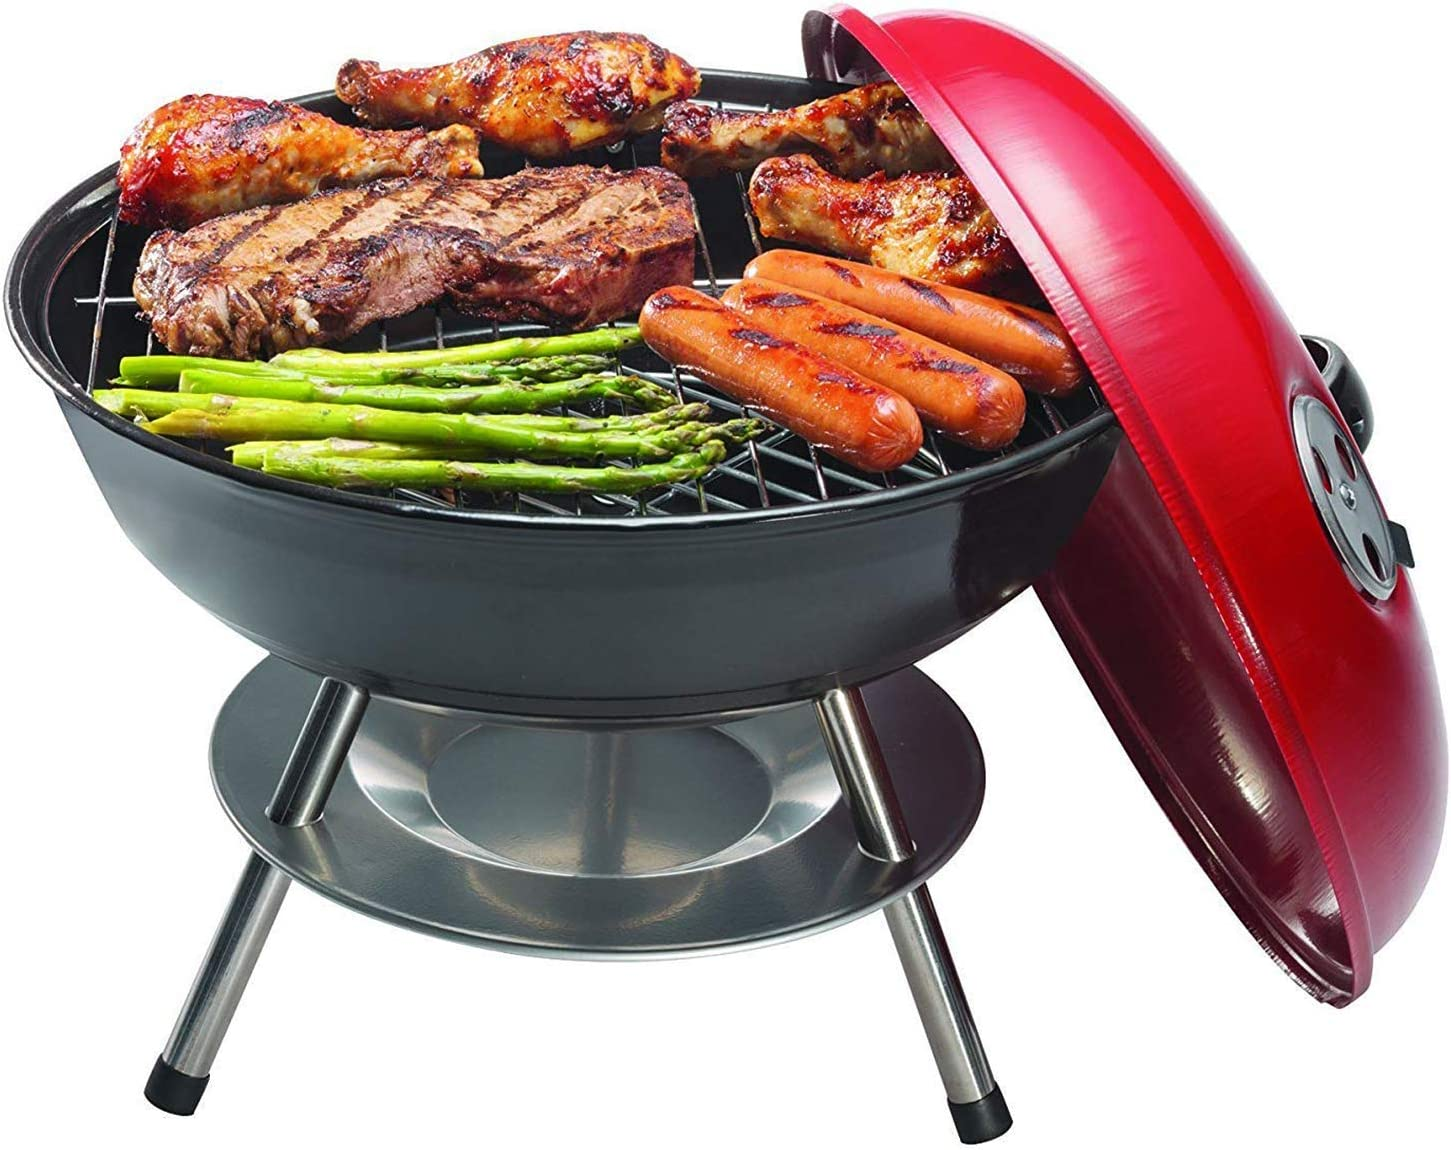 OVENTE GQR0400BR Charcoal, 14 Chrome-Plated Grill, Enamel-Coated Firebox, Brushed